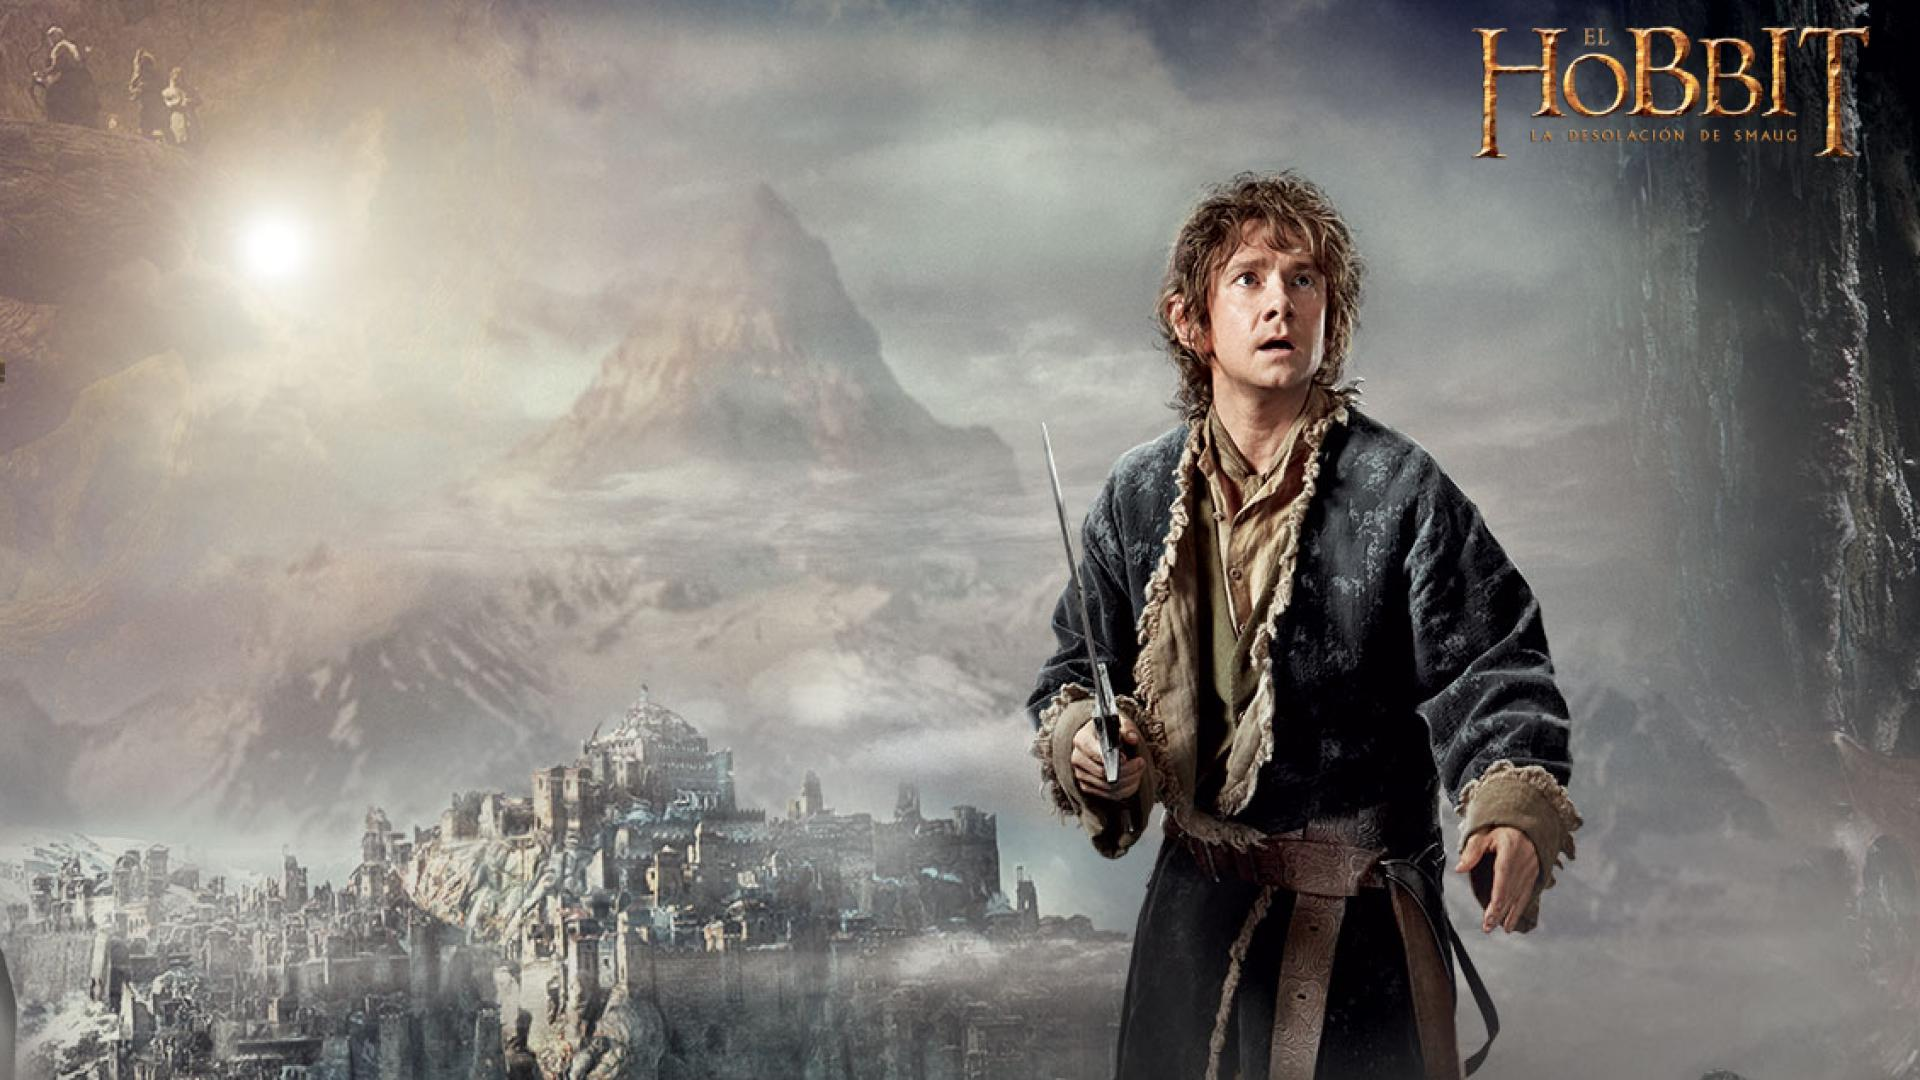 The Hobbit the Desolation of Smaug wallpaper 11